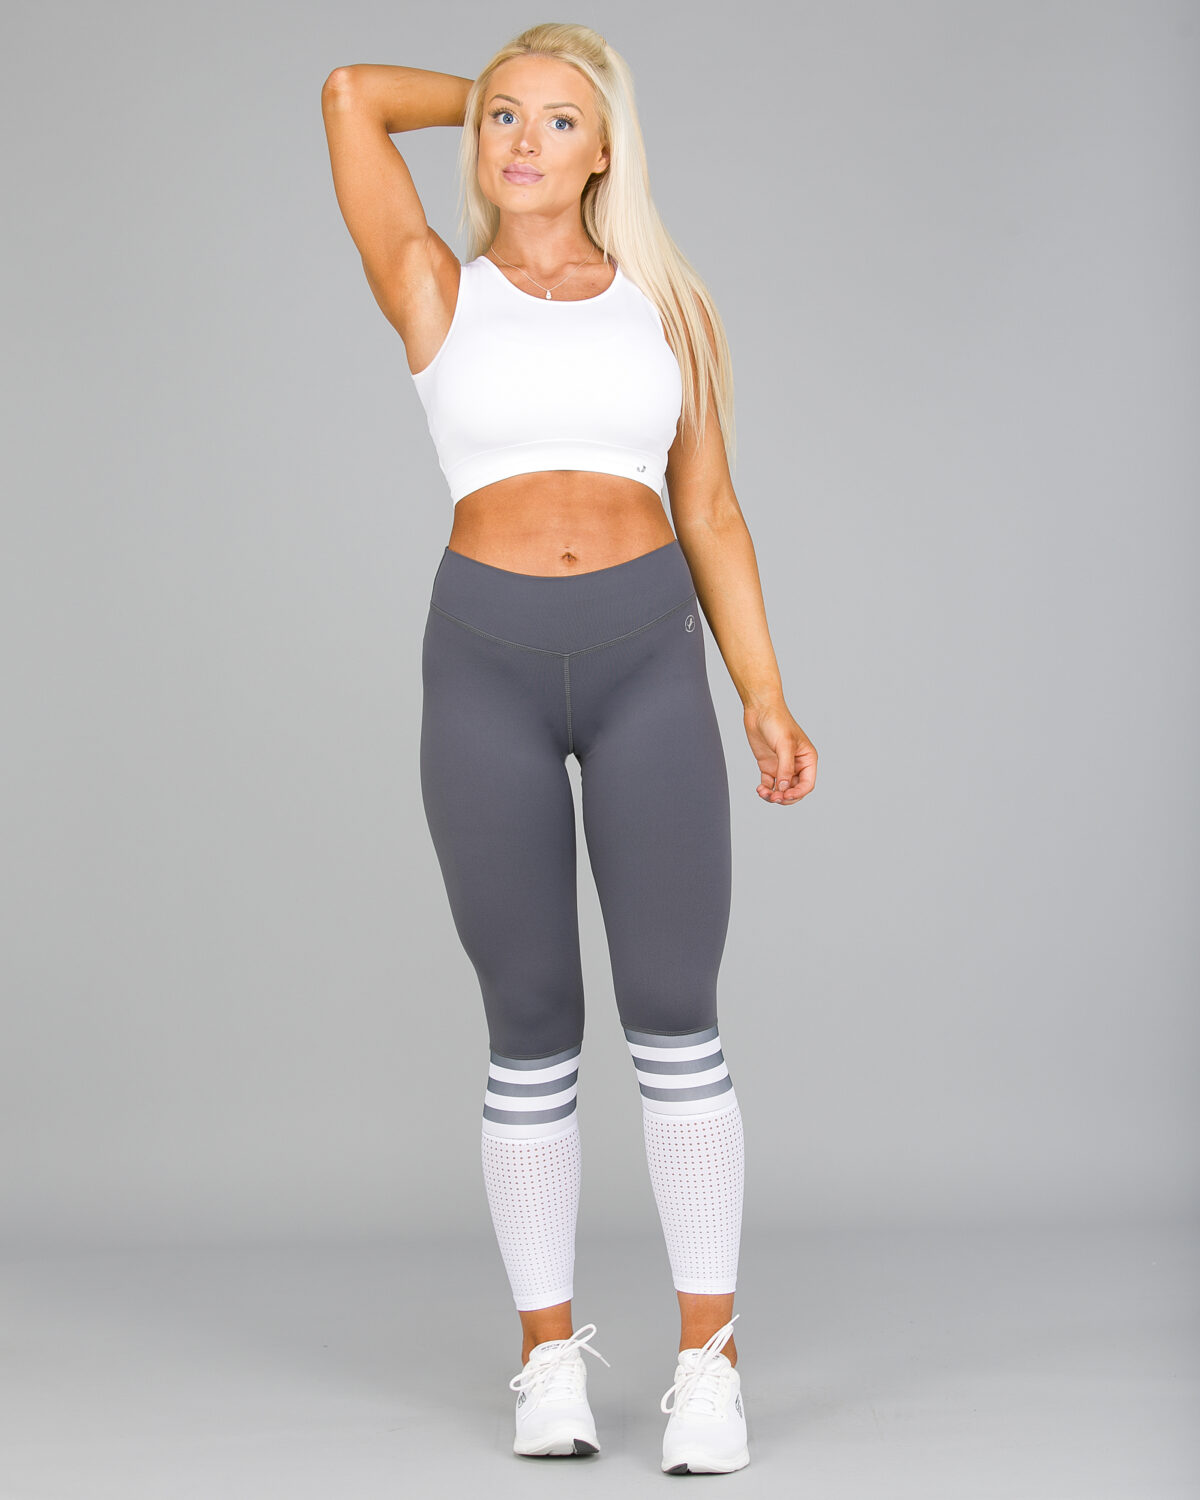 ABS2B-Fitness-Regular-Rise-Mom-Soccer-Mesh-Leggings-Grey6-1200×1500